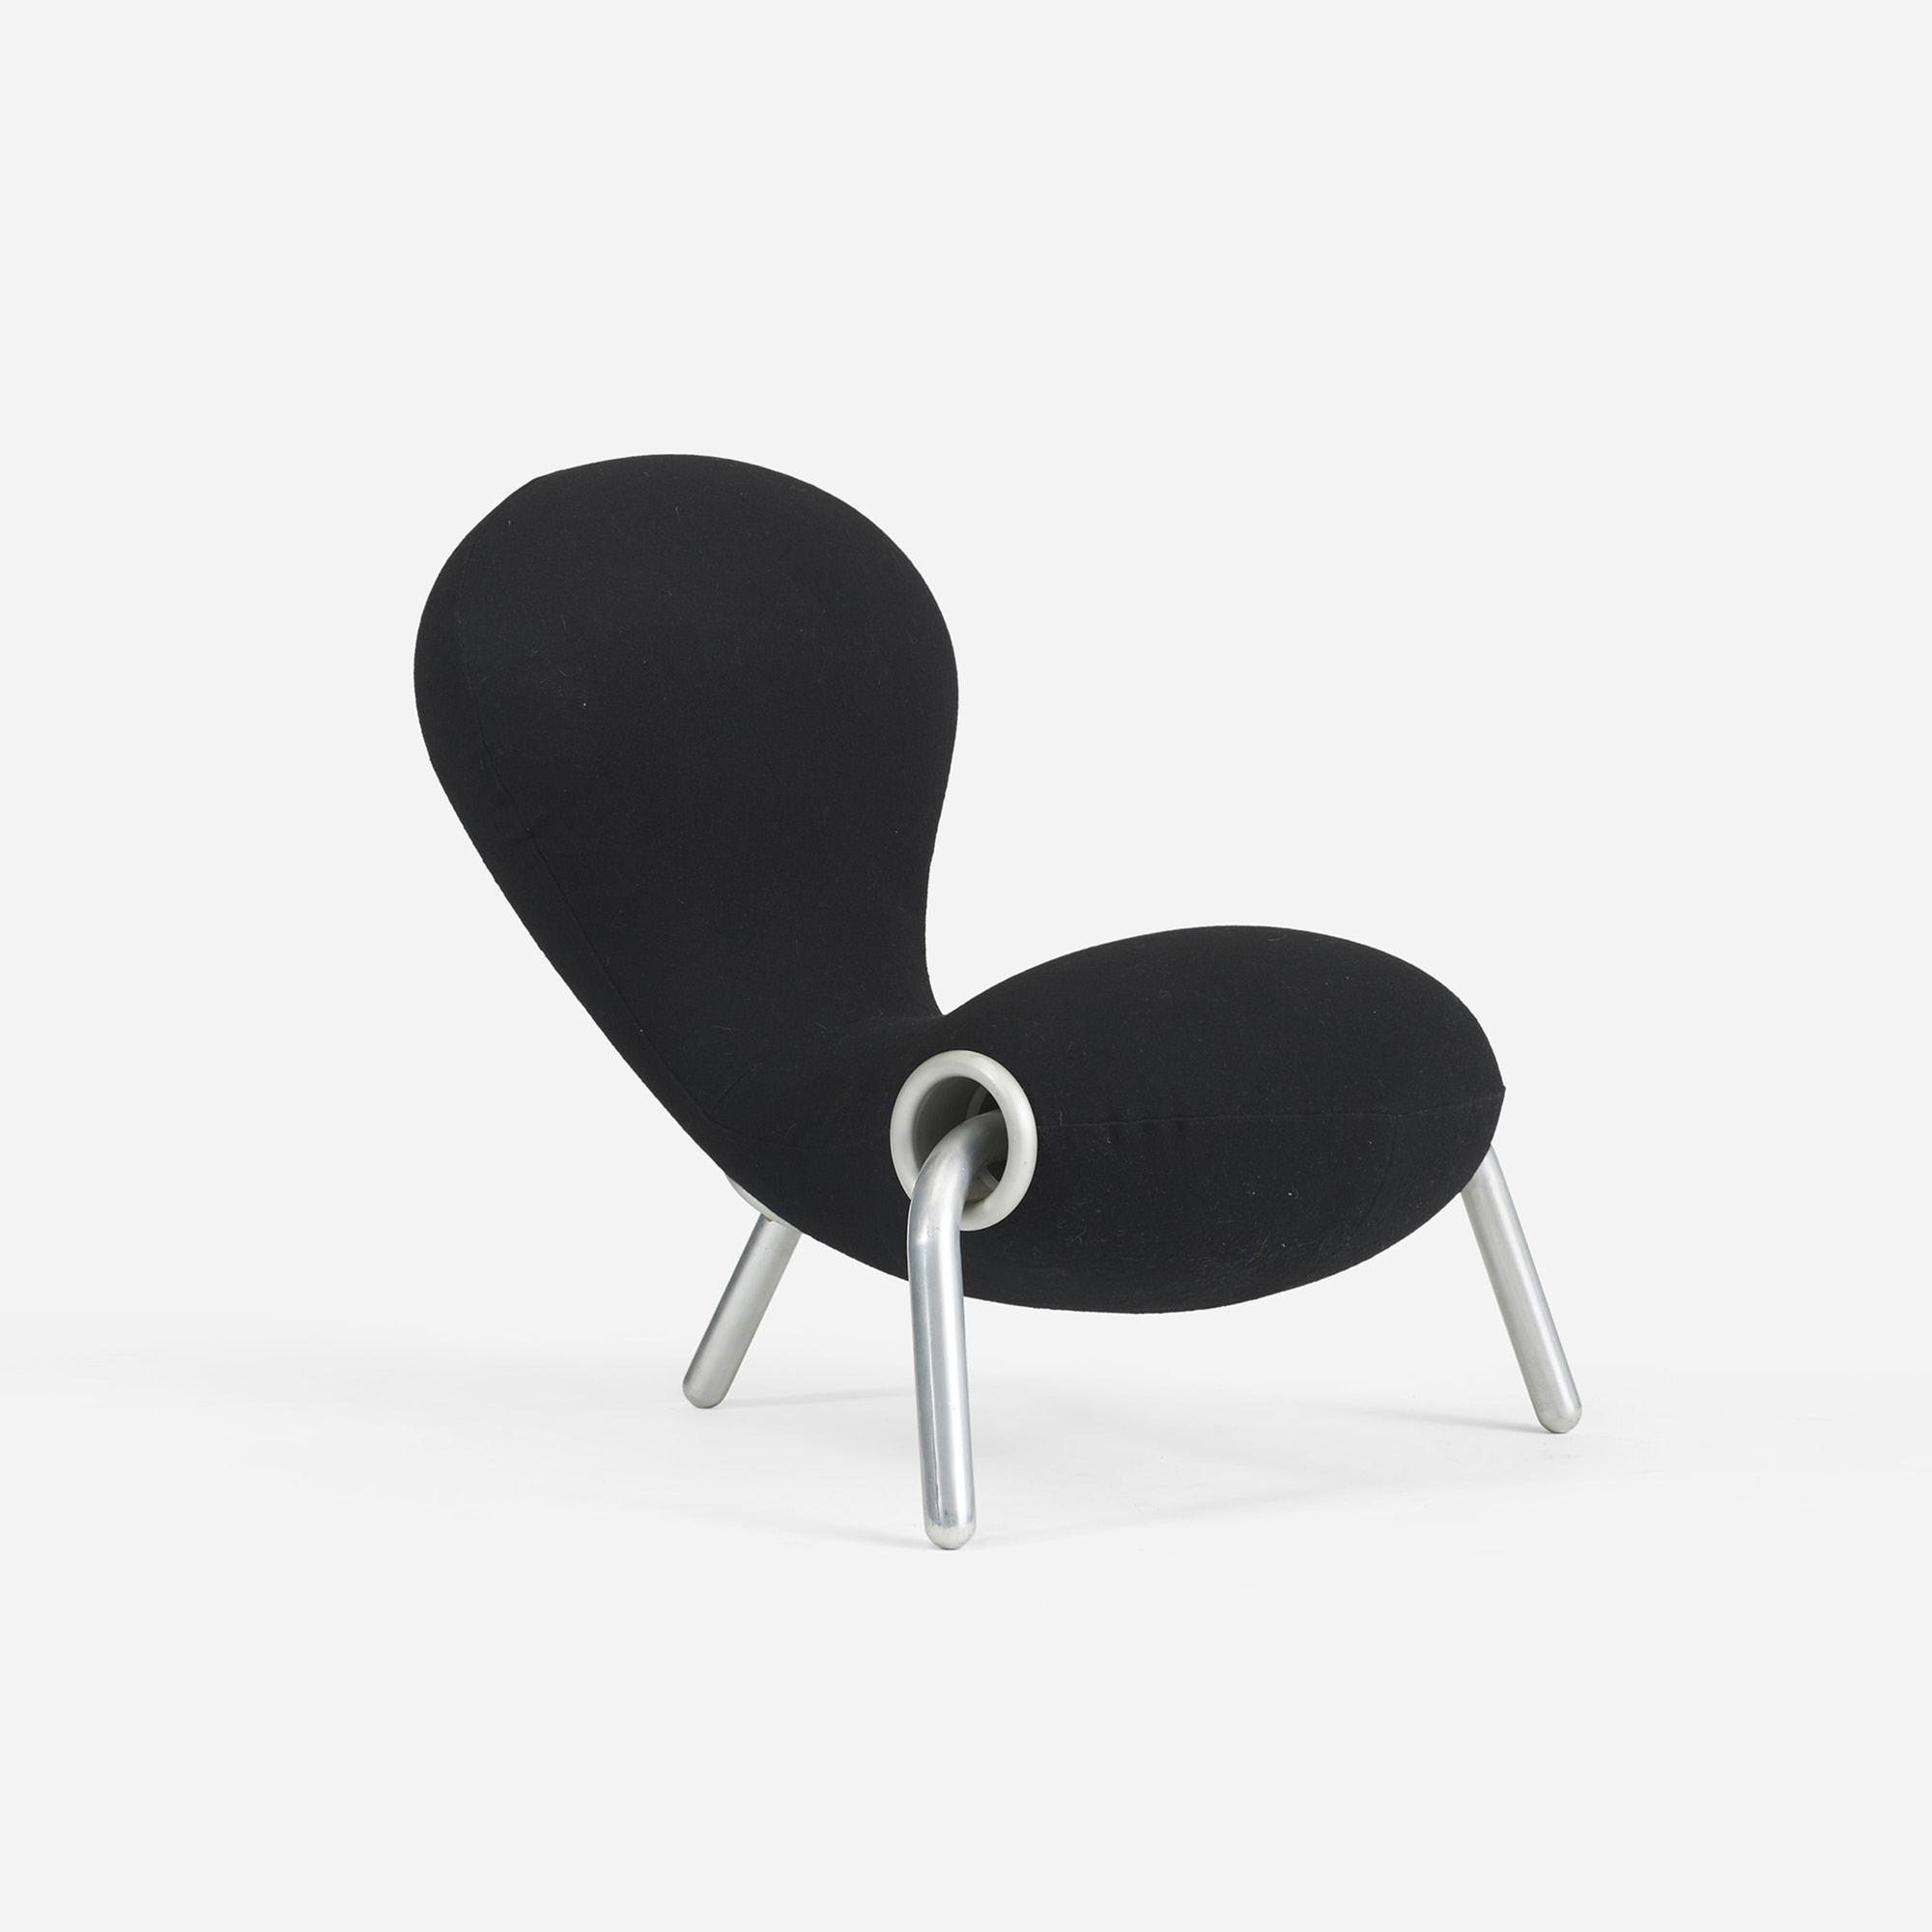 638: Marc Newson / Embryo chair (1 of 2)